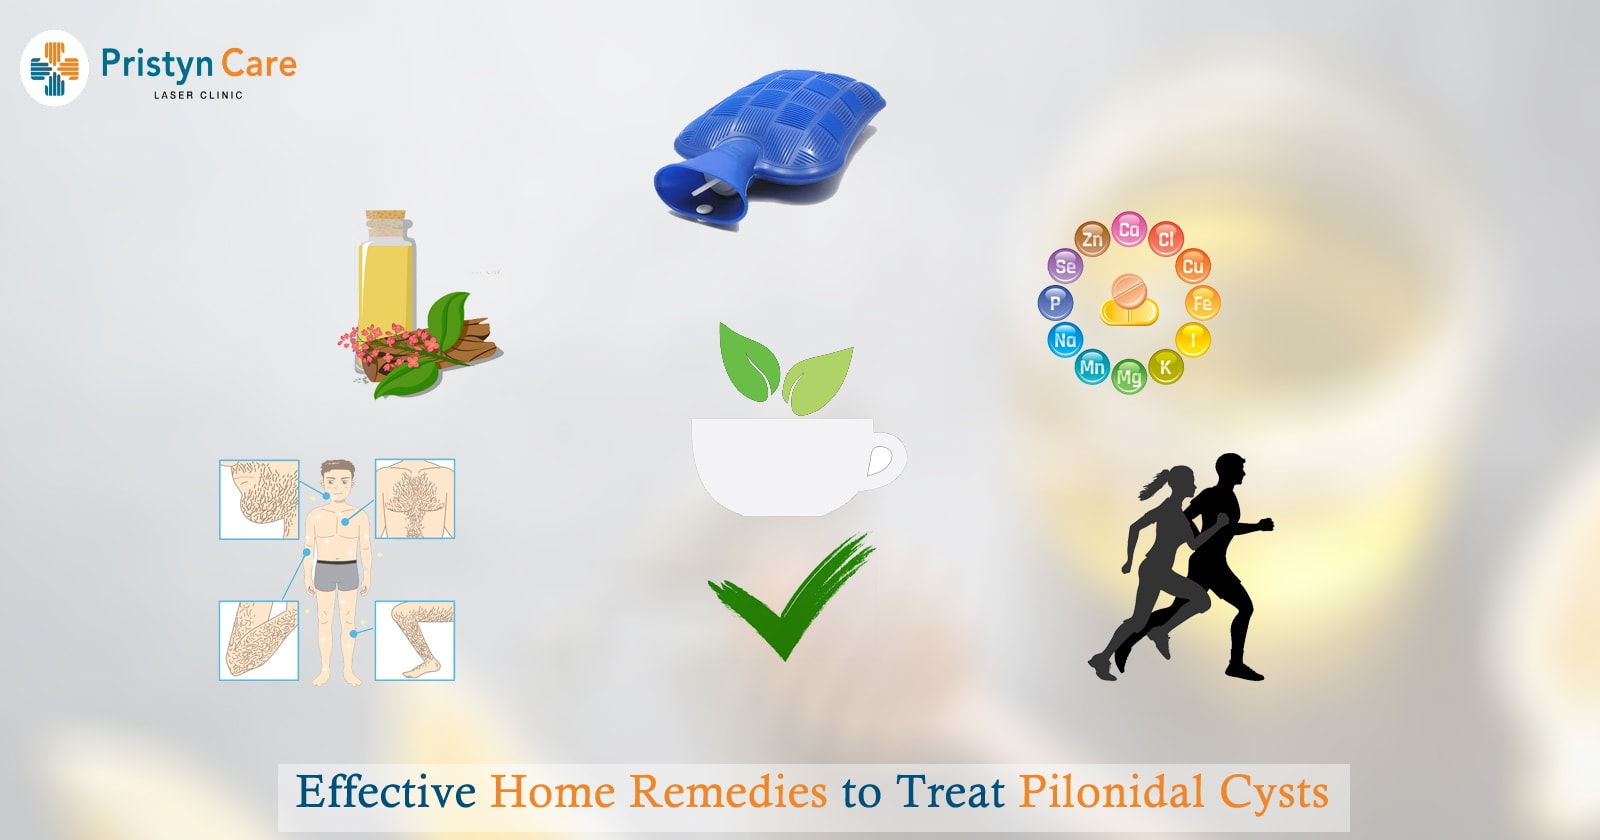 Effective Home Remedies to Treat Pilonidal Cysts